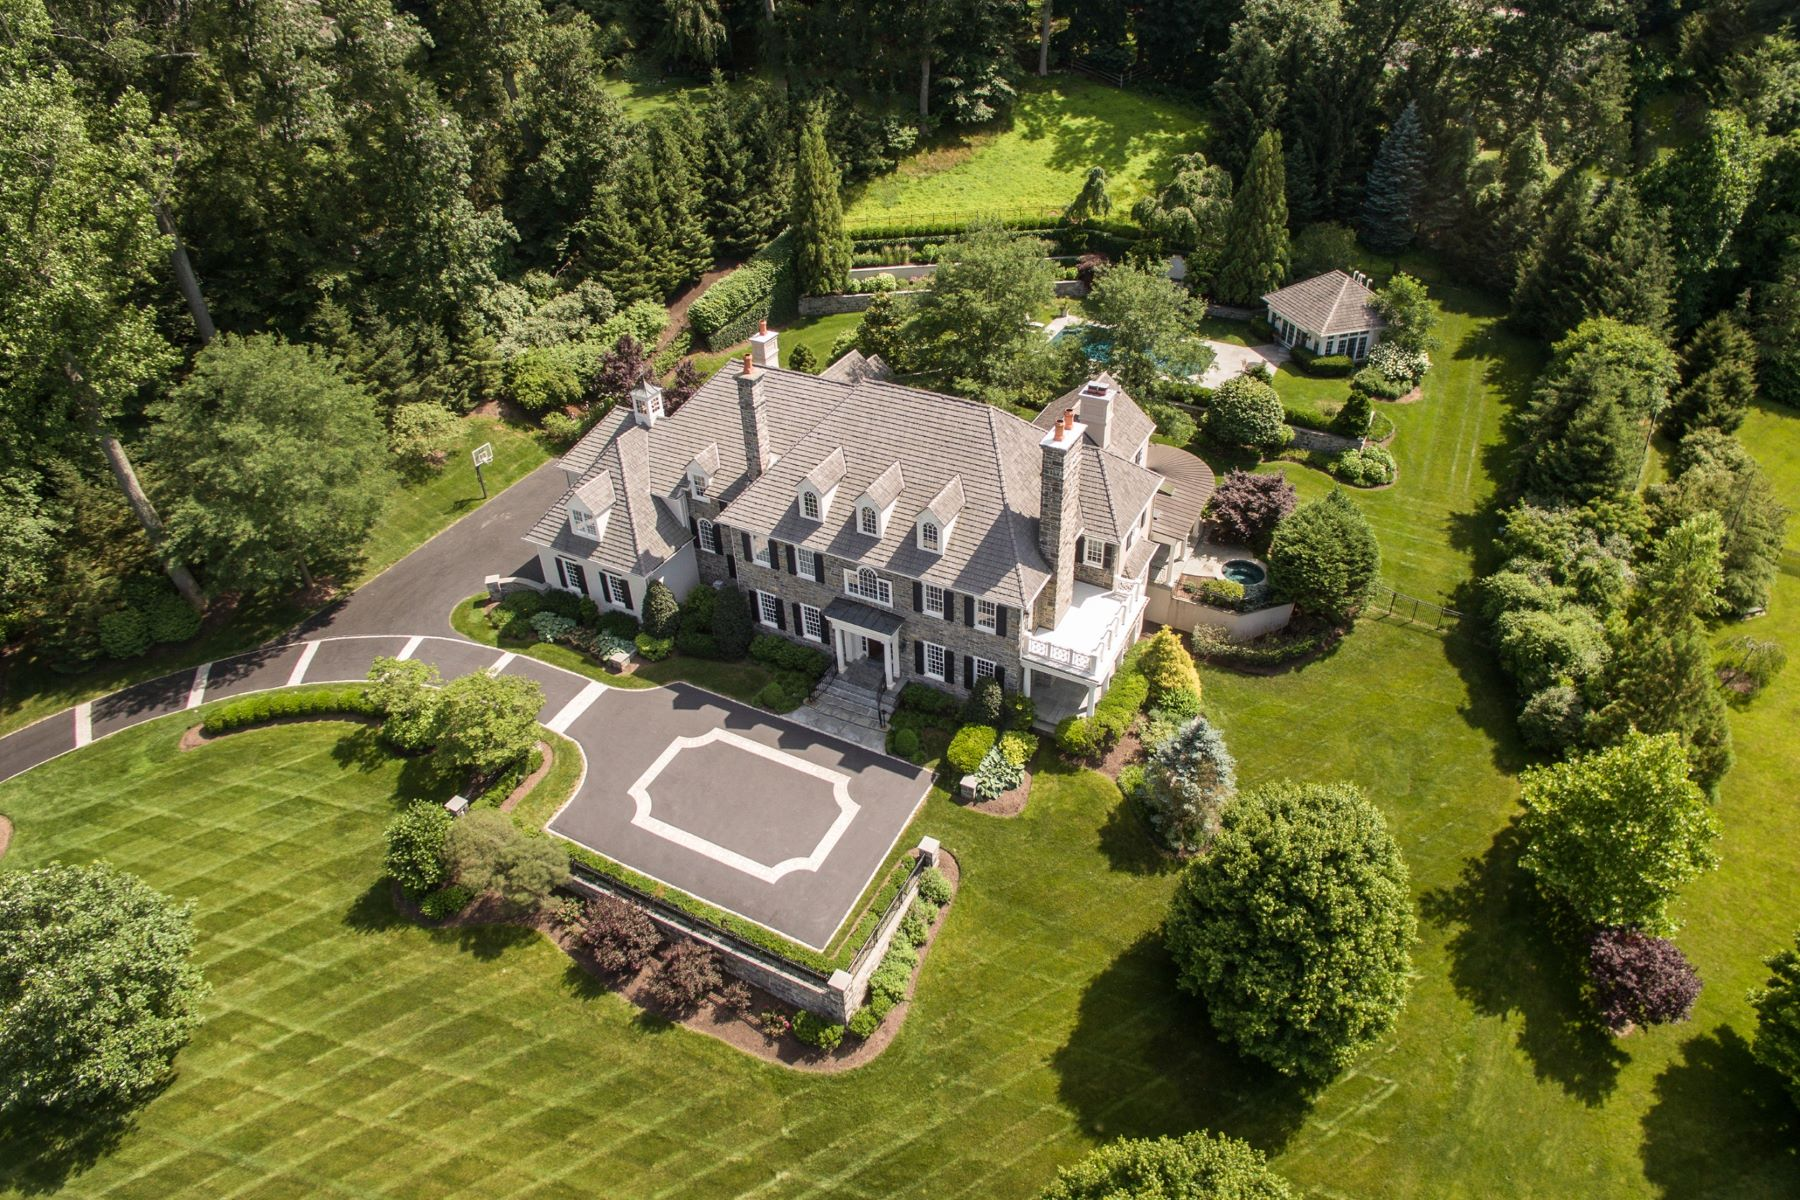 Single Family Home for Sale at Exceptional Residence 103 MILL VIEW LN Newtown Square, Pennsylvania 19073 United States